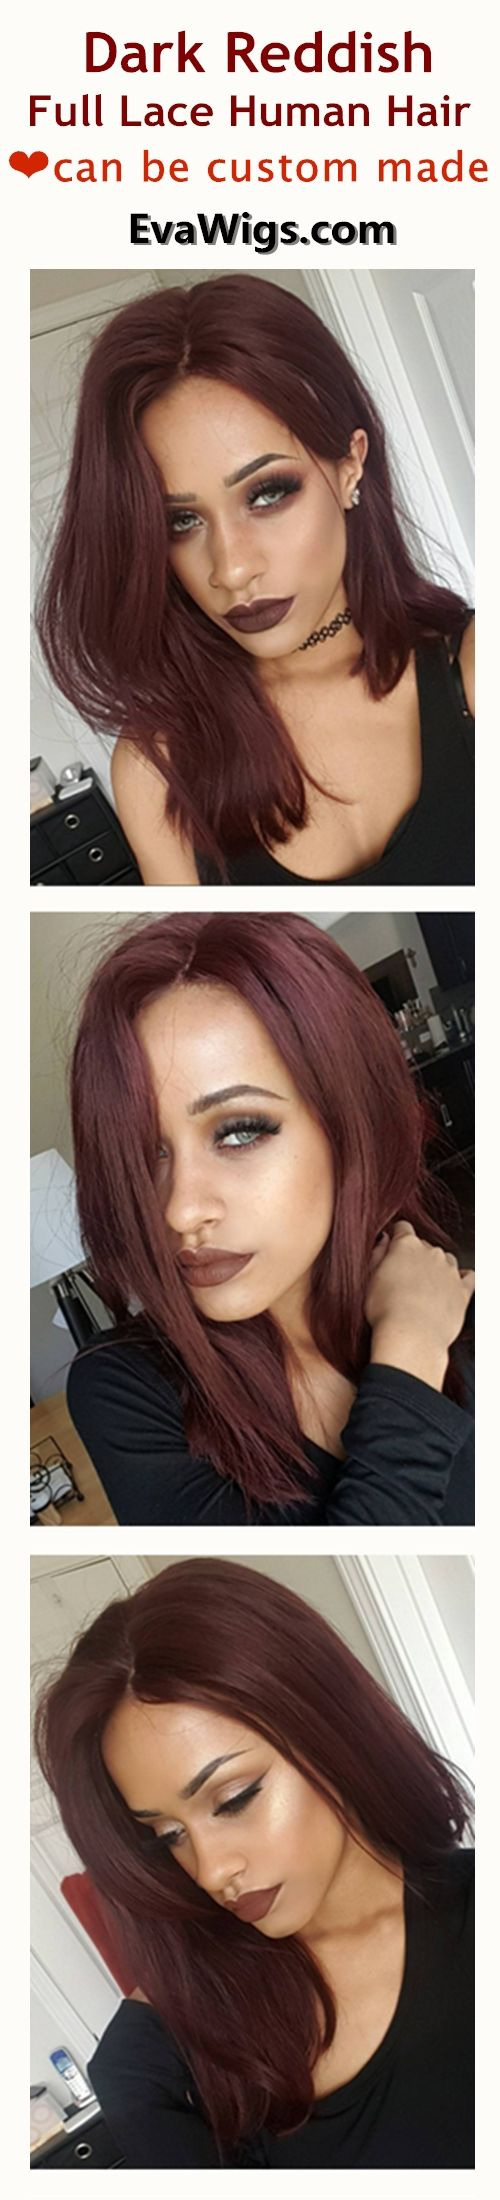 HO! Baby,have a look! Just get this dark reddish human hair wig instead of dying it -convenient&harmless.Check it at EvaWigs.com